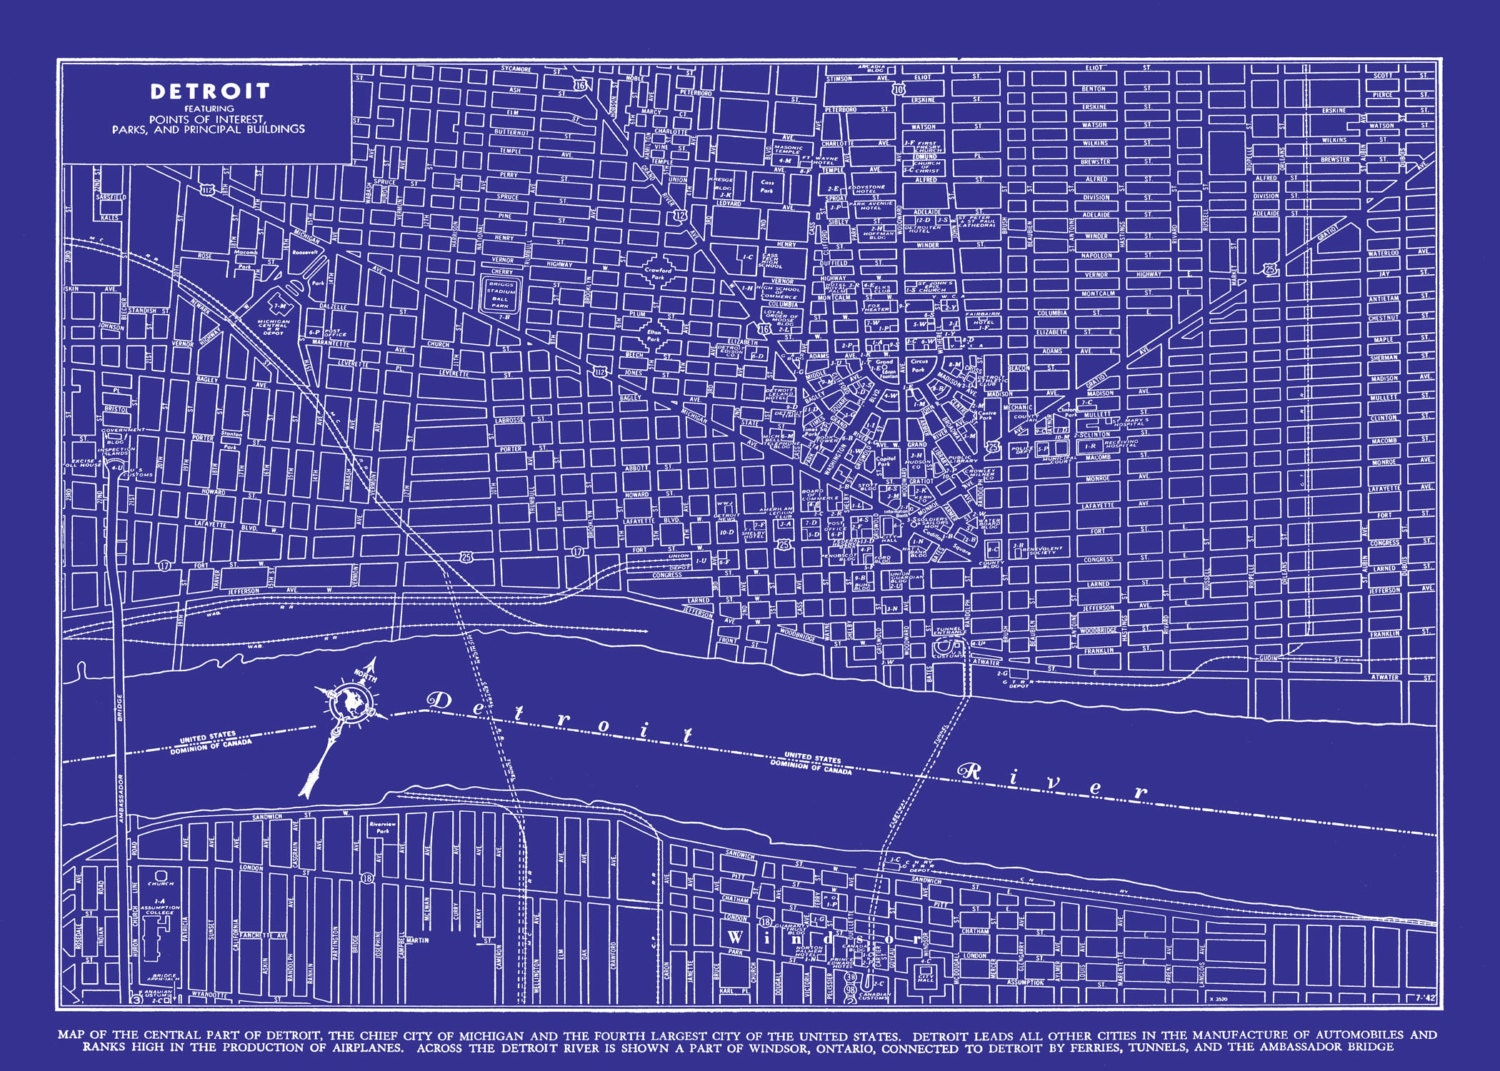 1949 detroit street map vintage blueprint print poster for Where to print blueprints